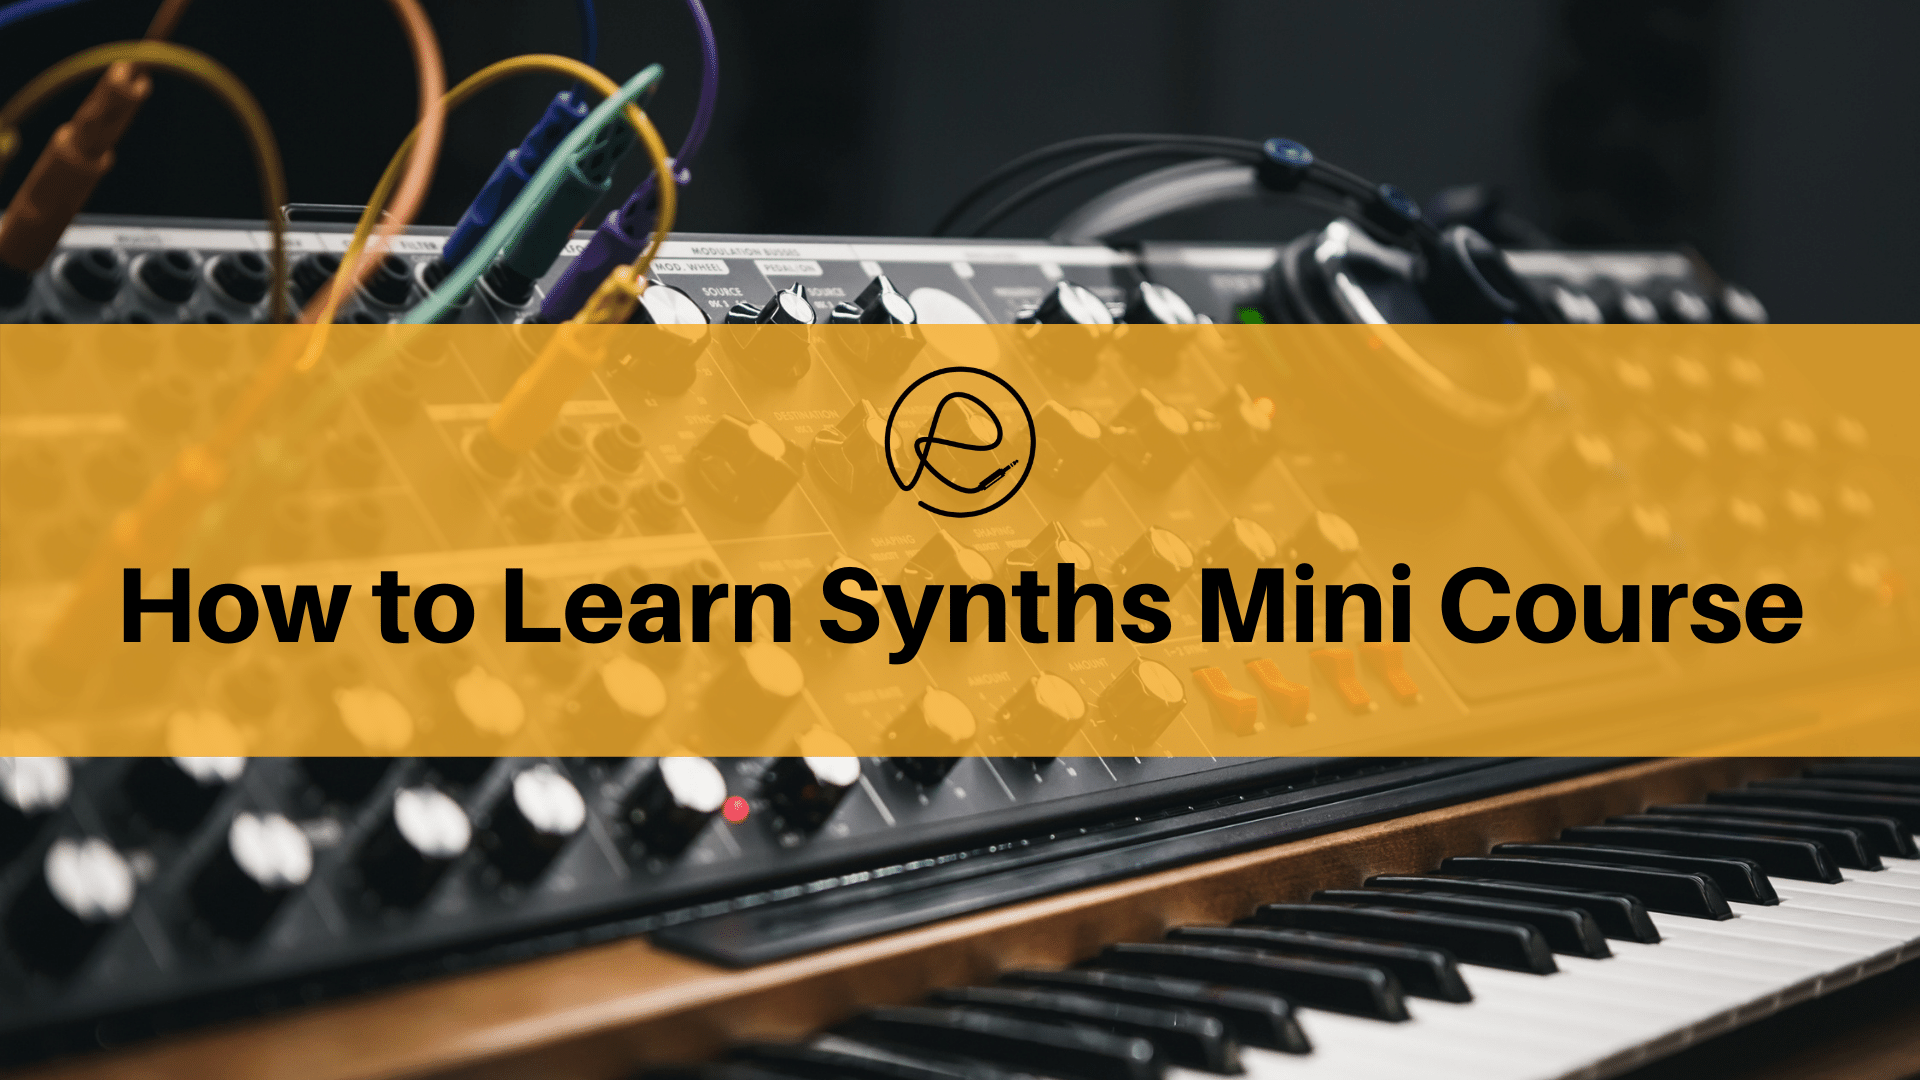 Synths Mini Course Cover